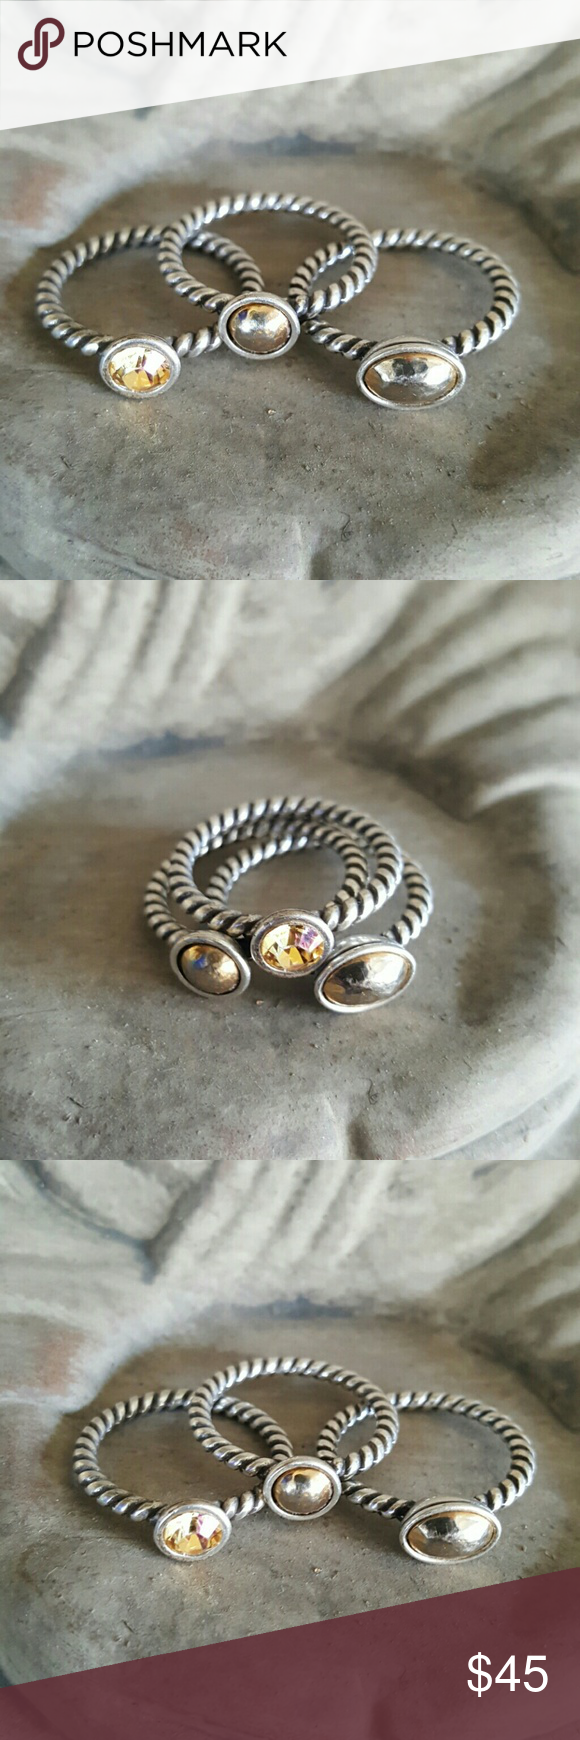 Rings Stacking BOHO Hippie Beautiful stacking rings. EITHER Size 6 or 7 not sure. Jewelry Rings